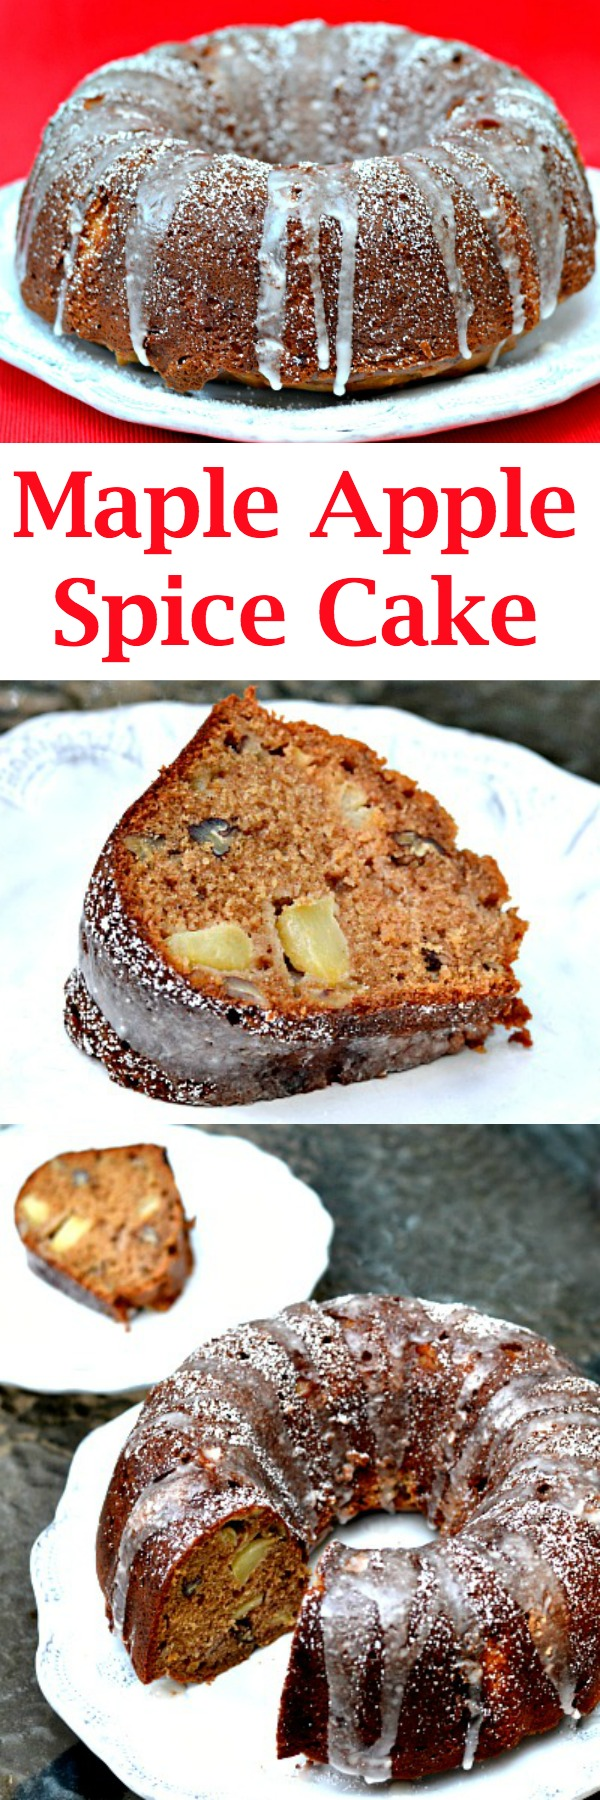 This Maple Apple Spice Bundt Cake is packed with fresh apples, warm spices and sweetened with a blend of brown sugar and maple syrup for the ultimate fall treat.